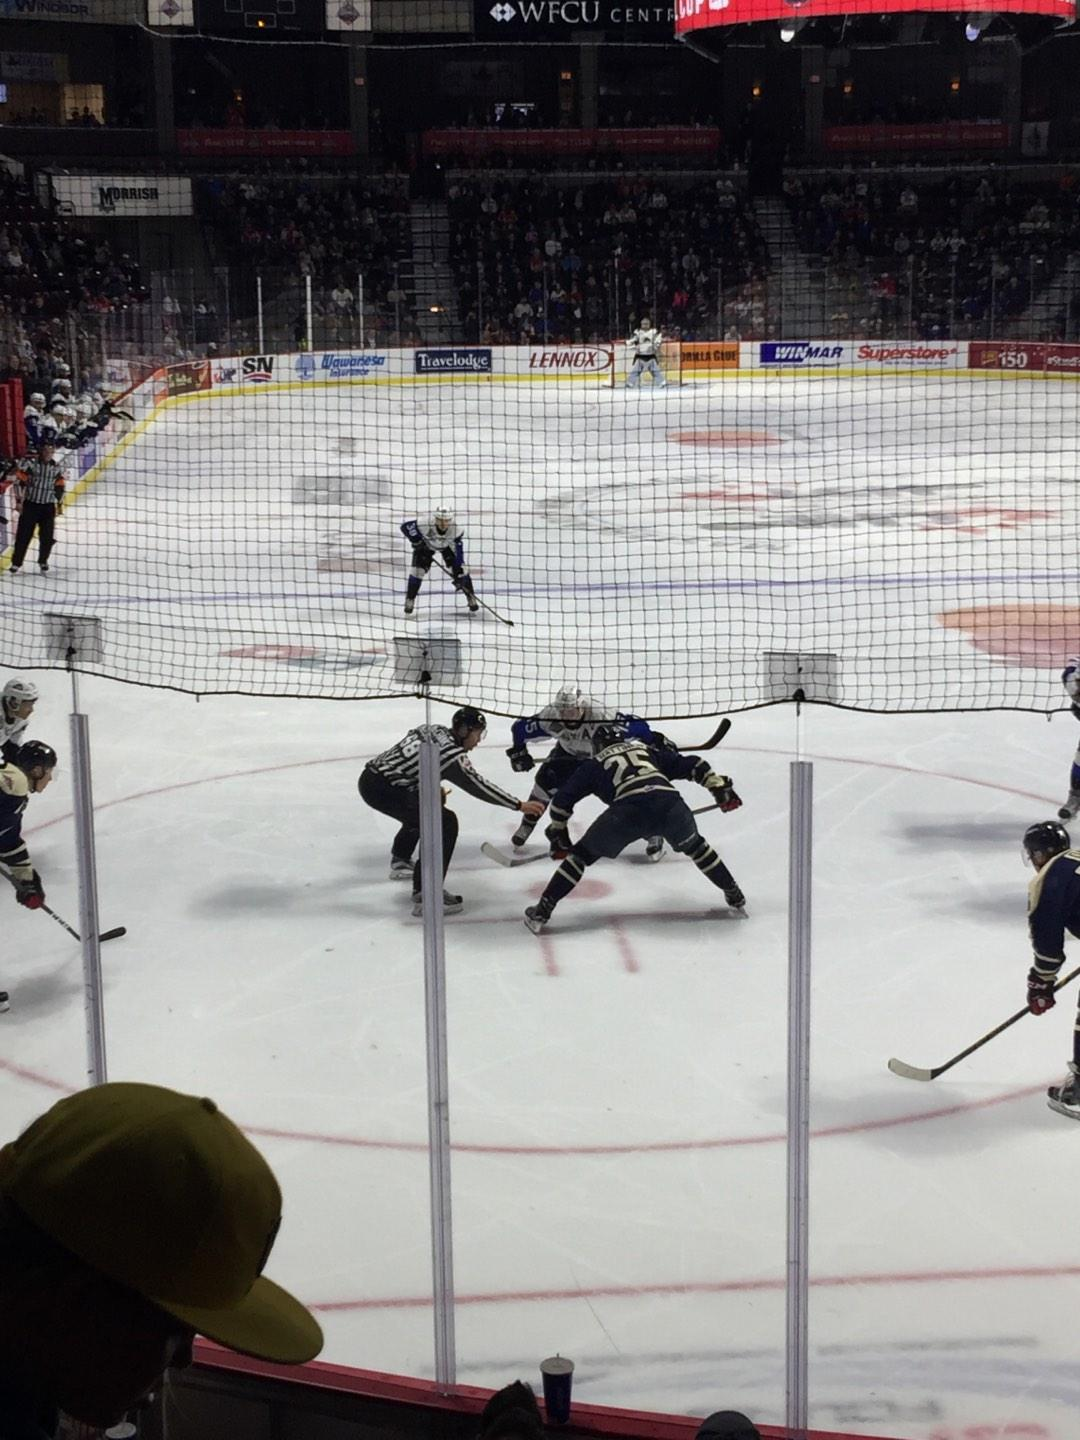 WFCU Centre Section 110 Row H Seat 5